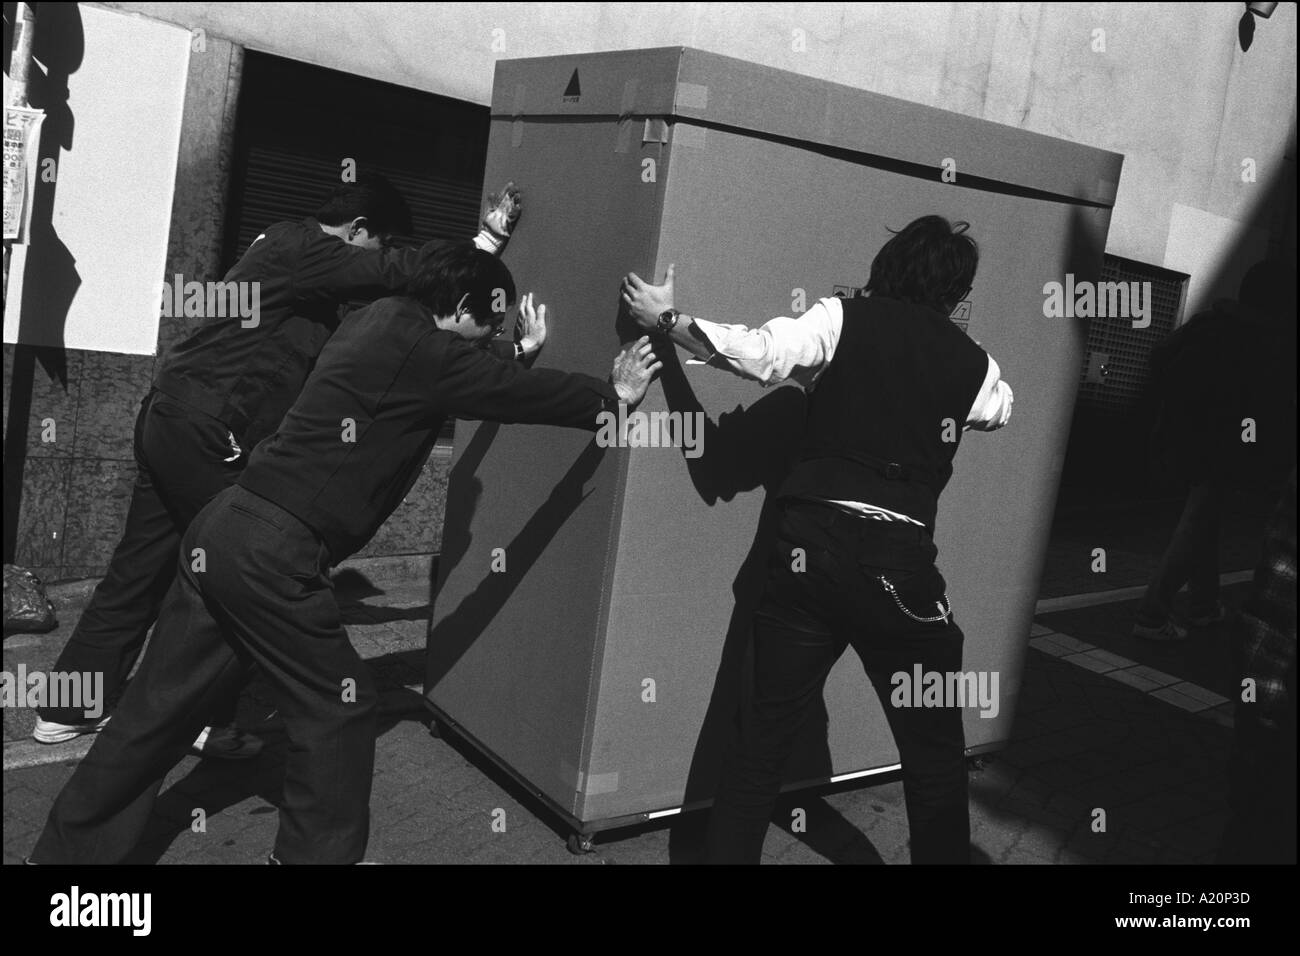 Delivery men push a large box in a street in the Shibuya district of the city, Tokyo, Japan - Stock Image